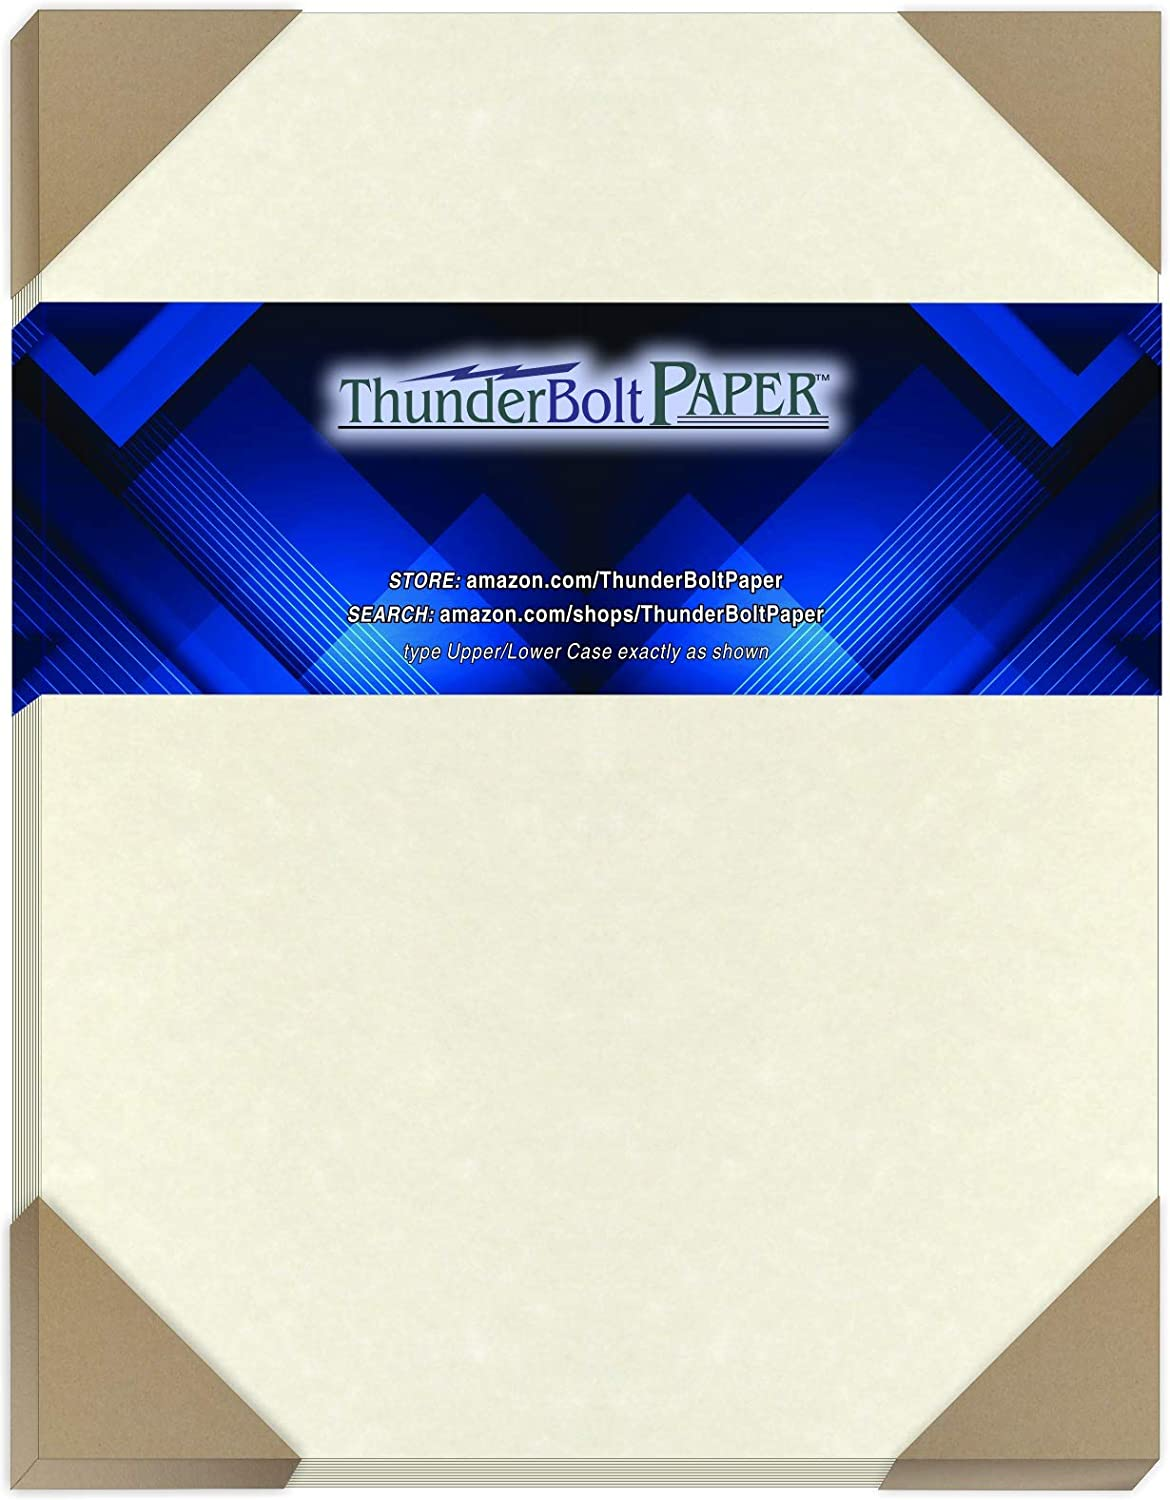 350 Soft White Parchment 60# Text (=24# Bond) Paper Sheets - 8.5 X 11 Inches Standard Letter|Flyer Size Size - 60 Pound is Not Card Weight - Vintage Colored Old Parchment Semblance